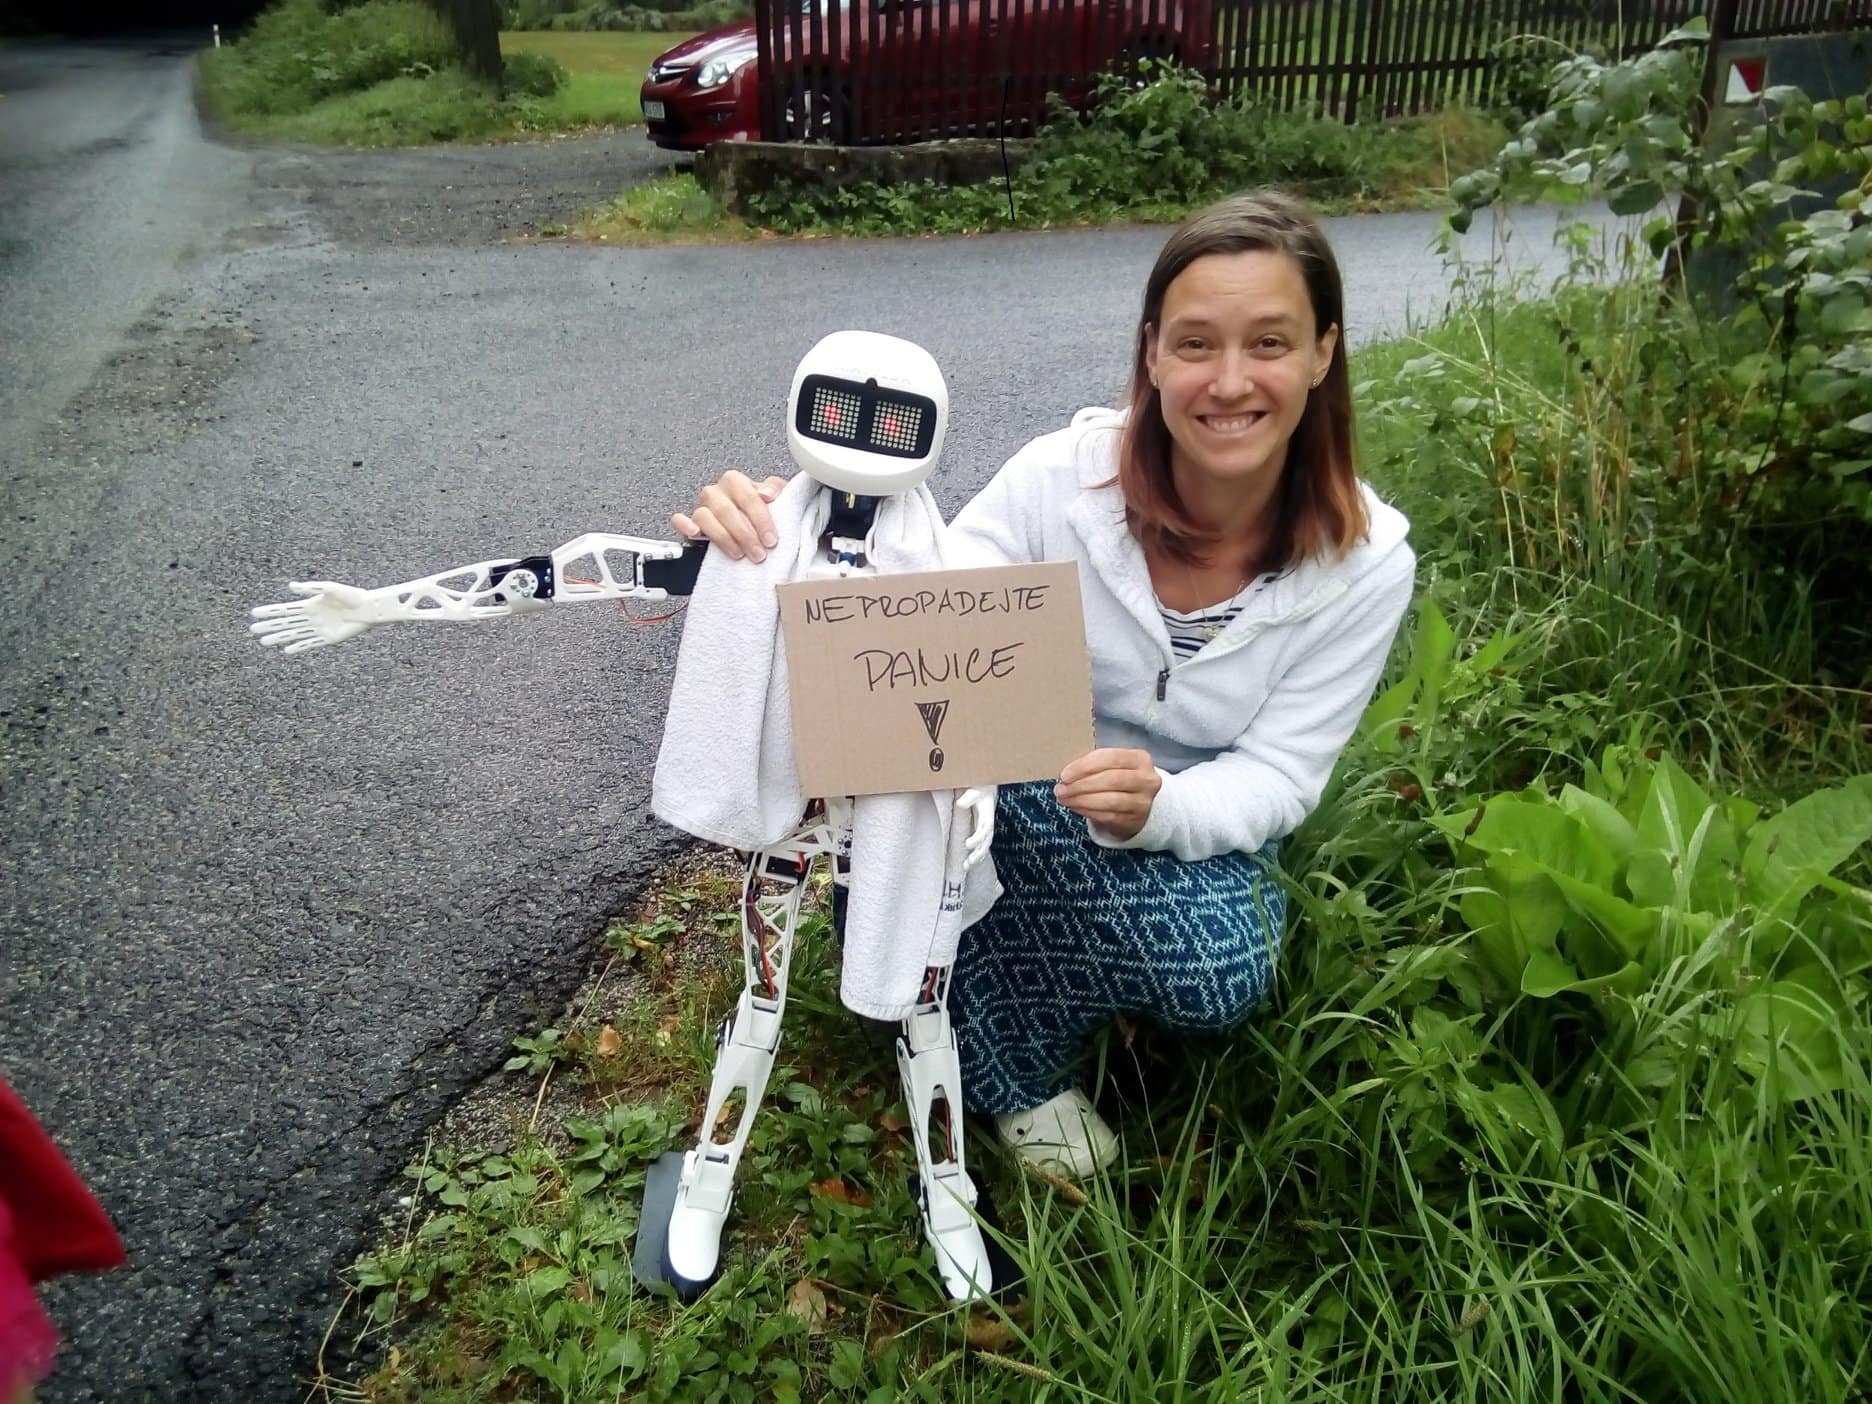 Humanoid Robot Matylda to Hitchhike across the Czech Republic